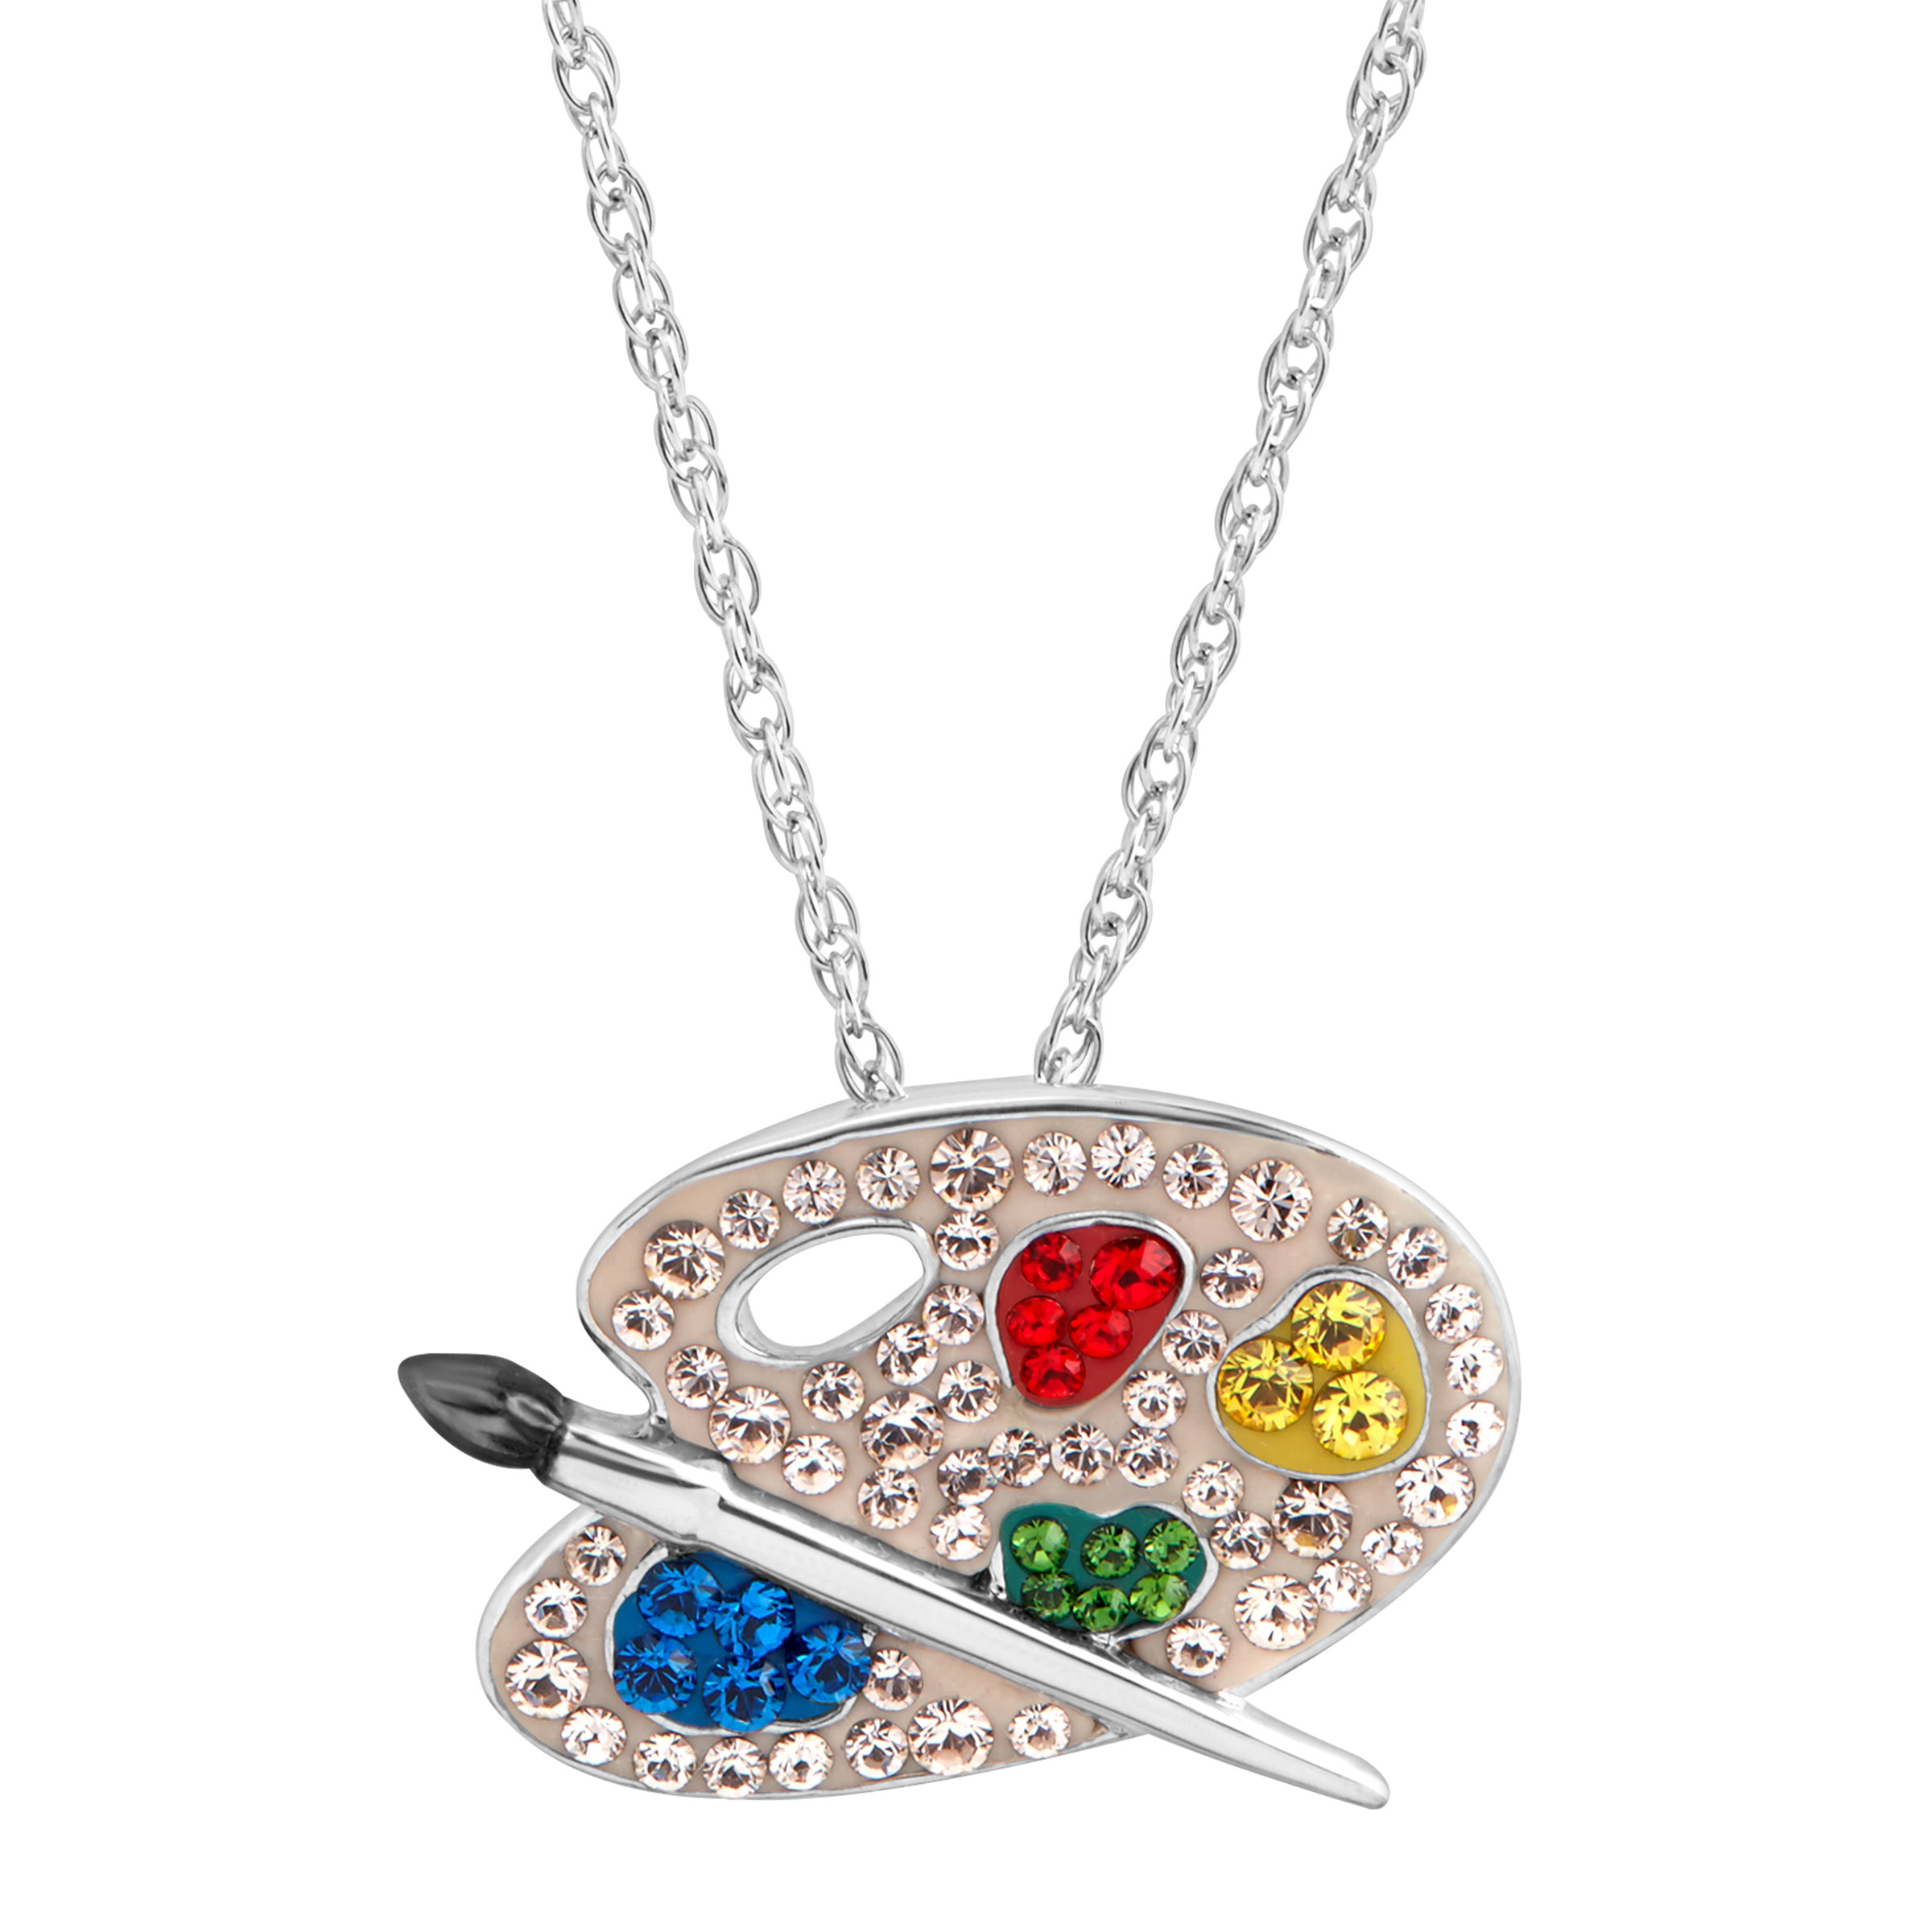 Luminesse Paint Palette Pendant Necklace with Swarovski Crystals in Sterling Silver